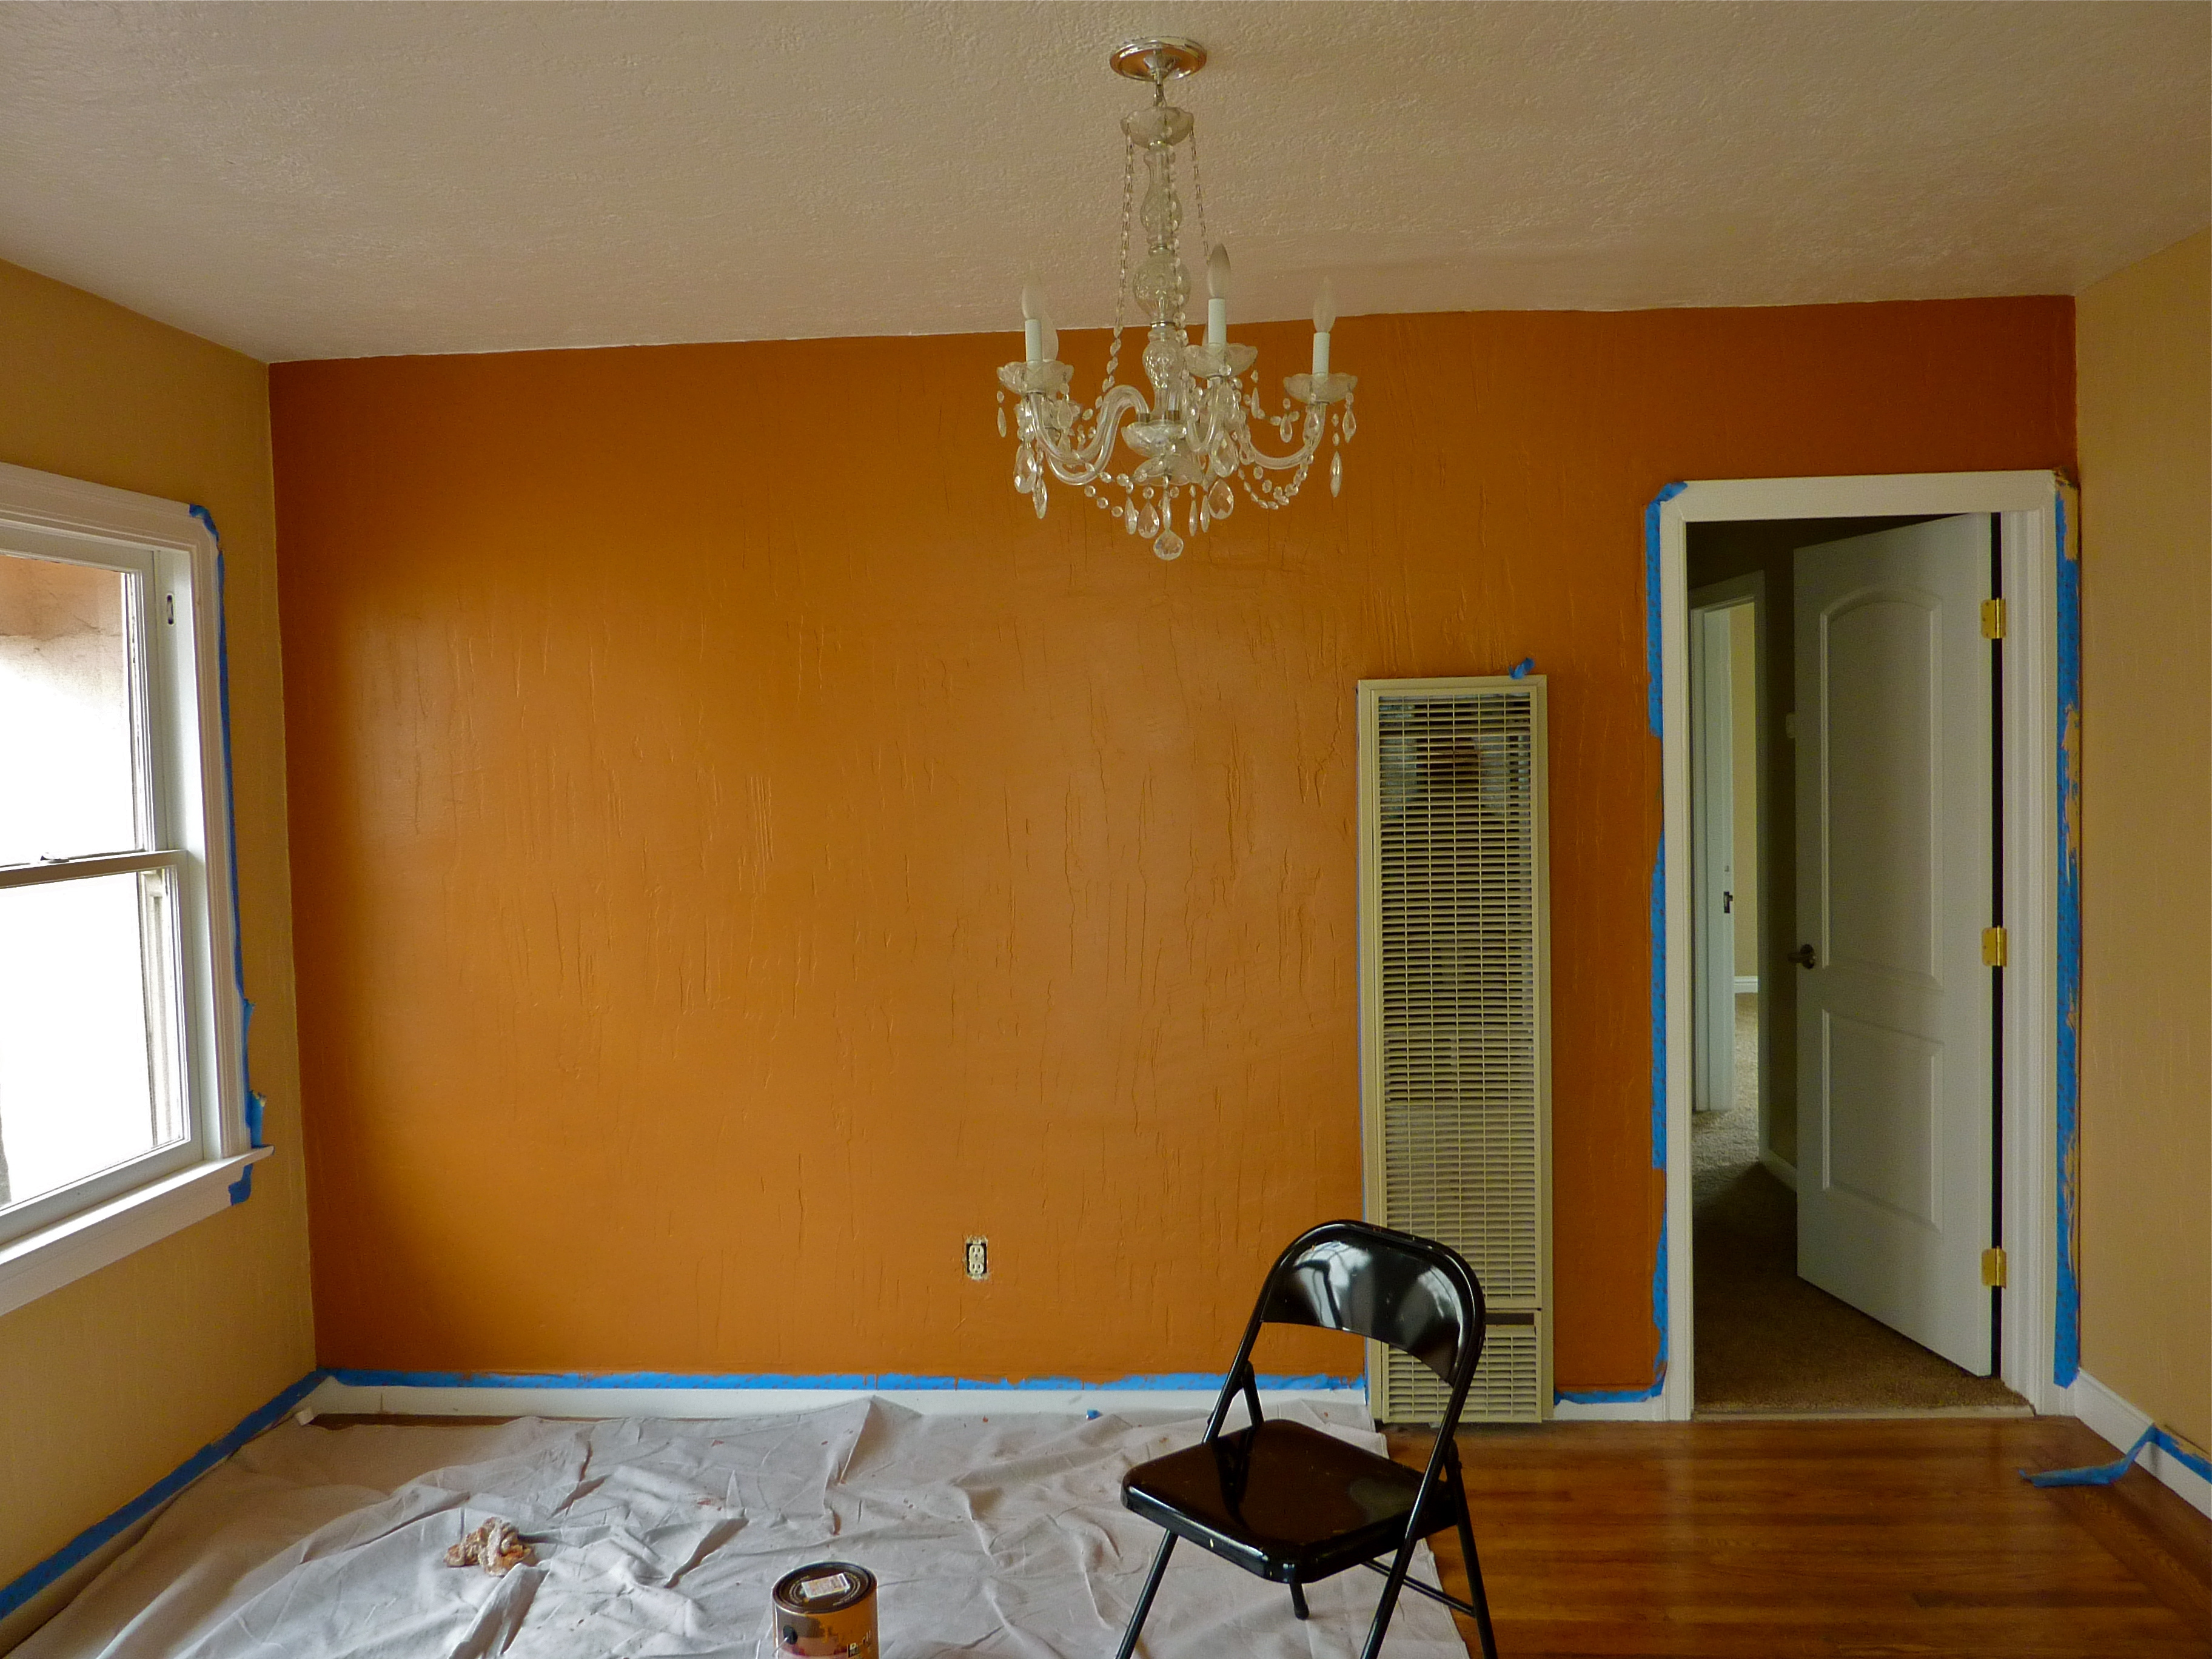 Wall Painting Designs For Hall Compared To Choosing Paint Colors Cooking Dinner For 100